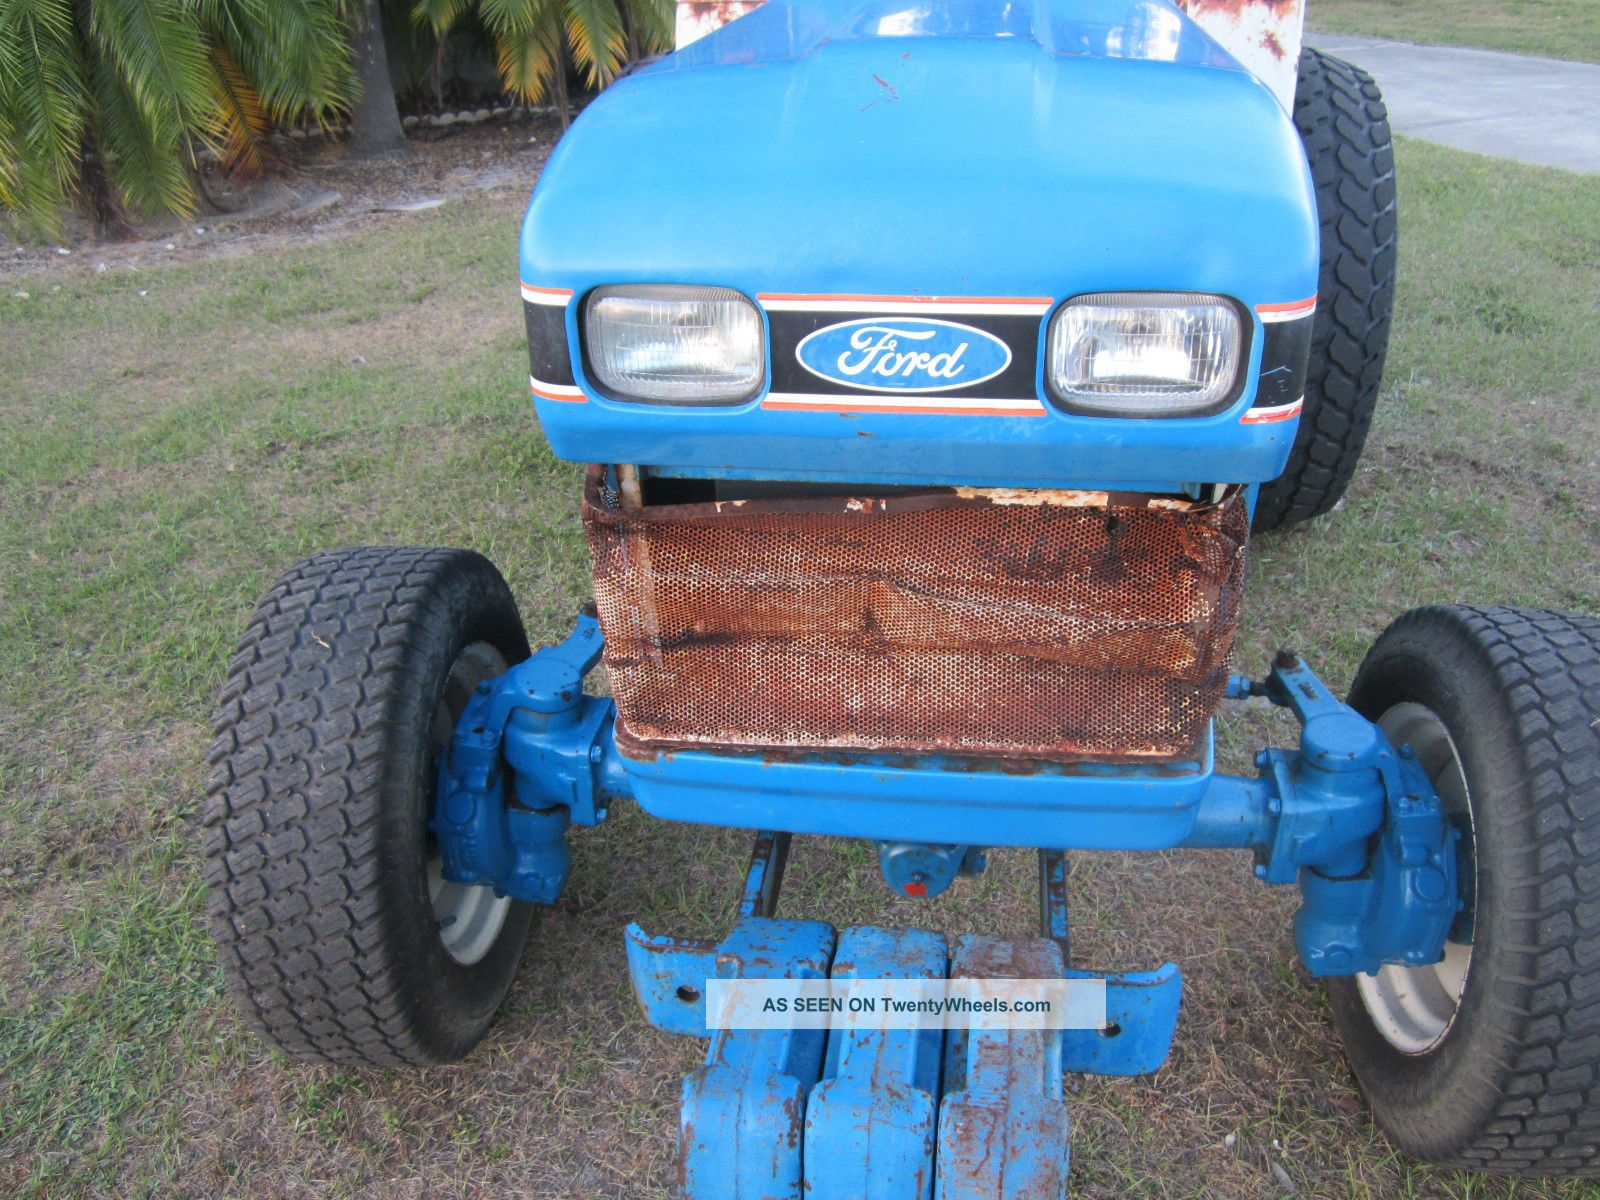 Ford Tractor Turf Tires : Ford hst diesel compact tractor wheel drive turf